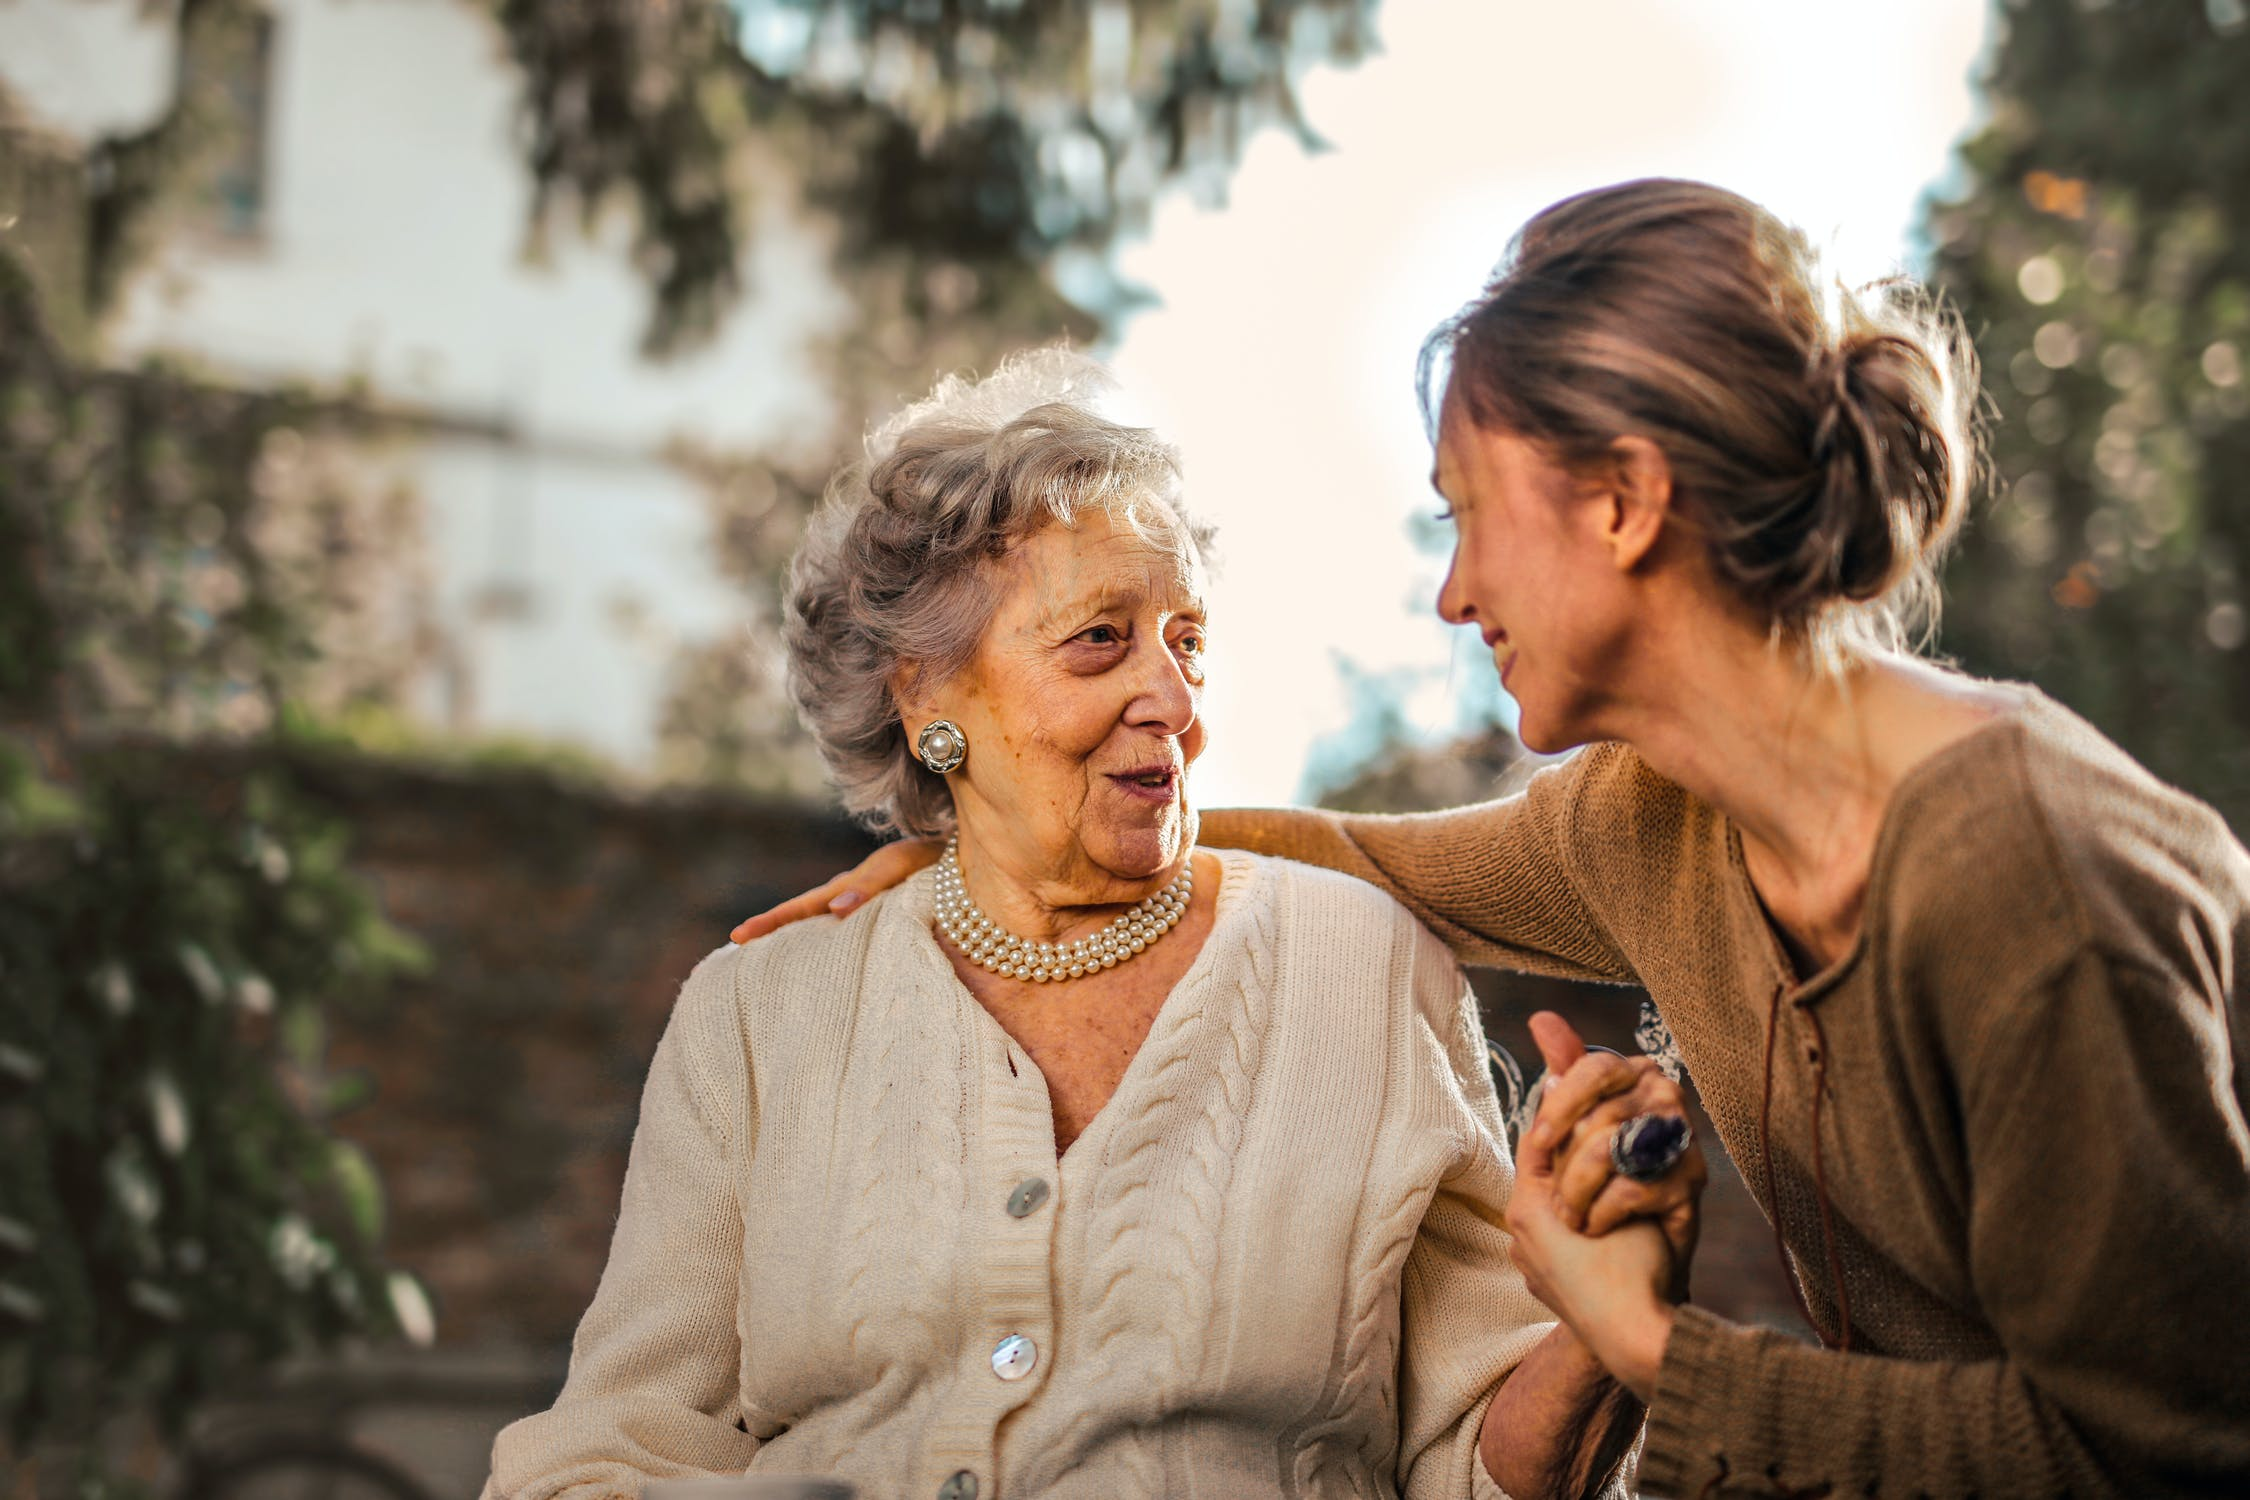 Image of an older woman and a younger woman, representing how Anna M. Price of Jenkins Fenstermaker, PLLC provides reliable estate planning advice in West Virginia, Ohio, and Kentucky.